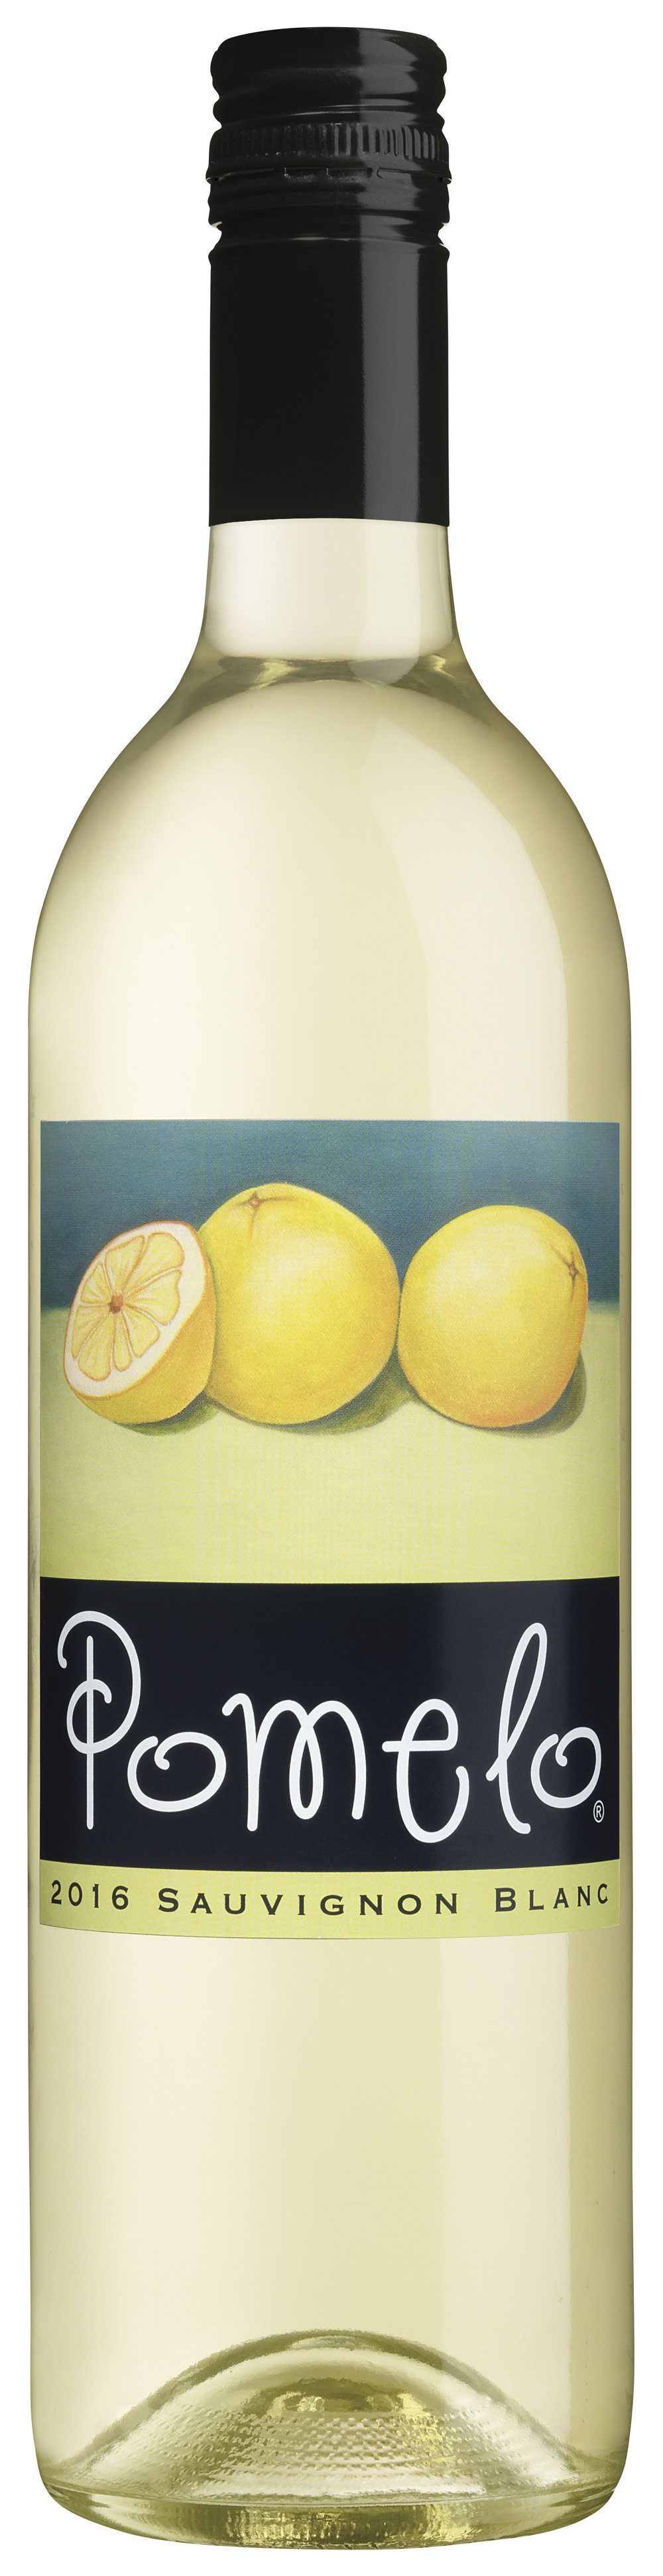 Pomelo 2016 Sauvignon Blanc HI Res Bottle Shot.jpg